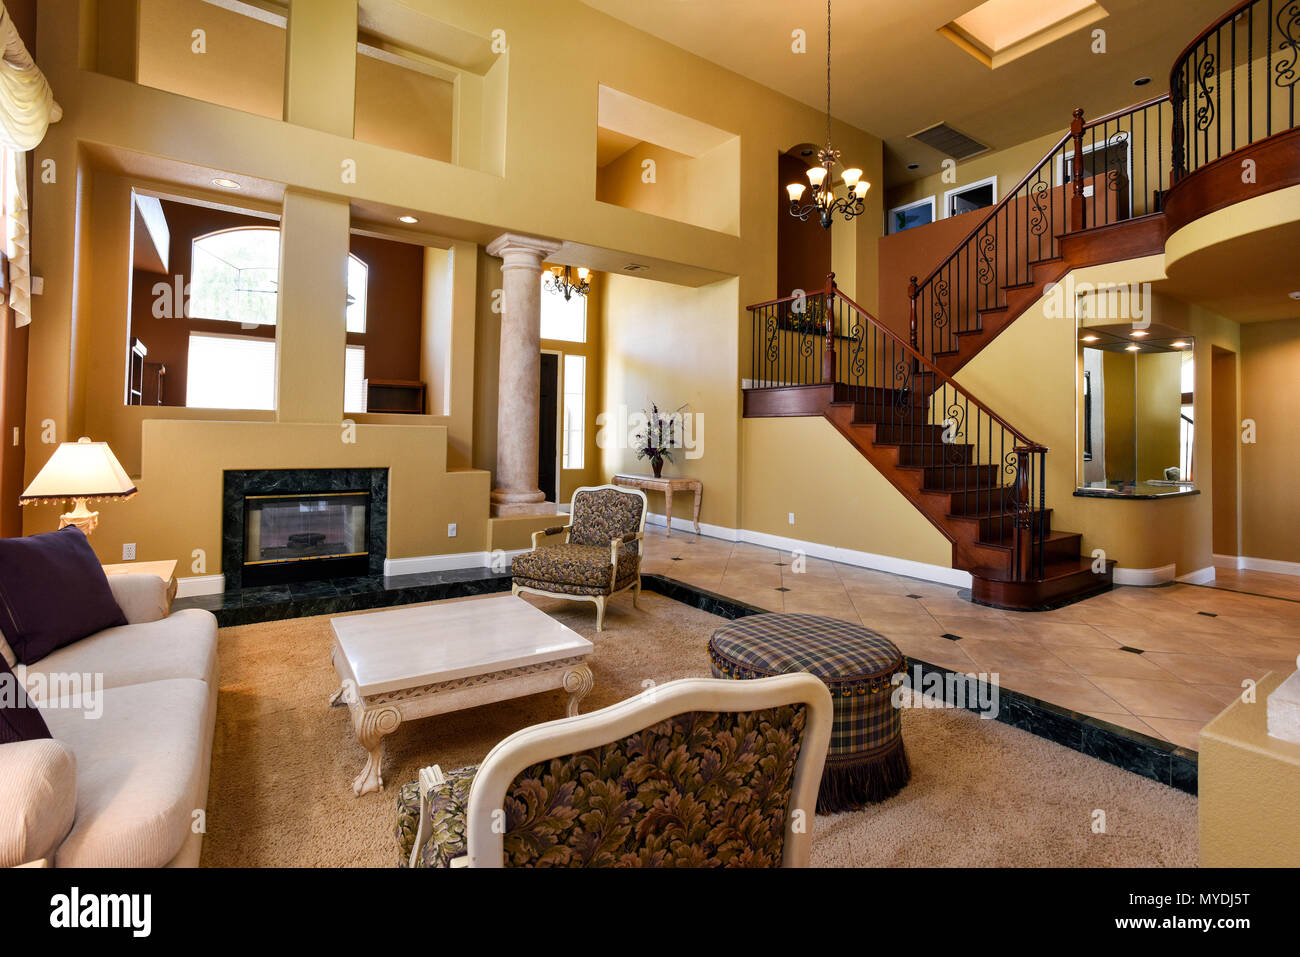 Residential living room interior Foto Stock